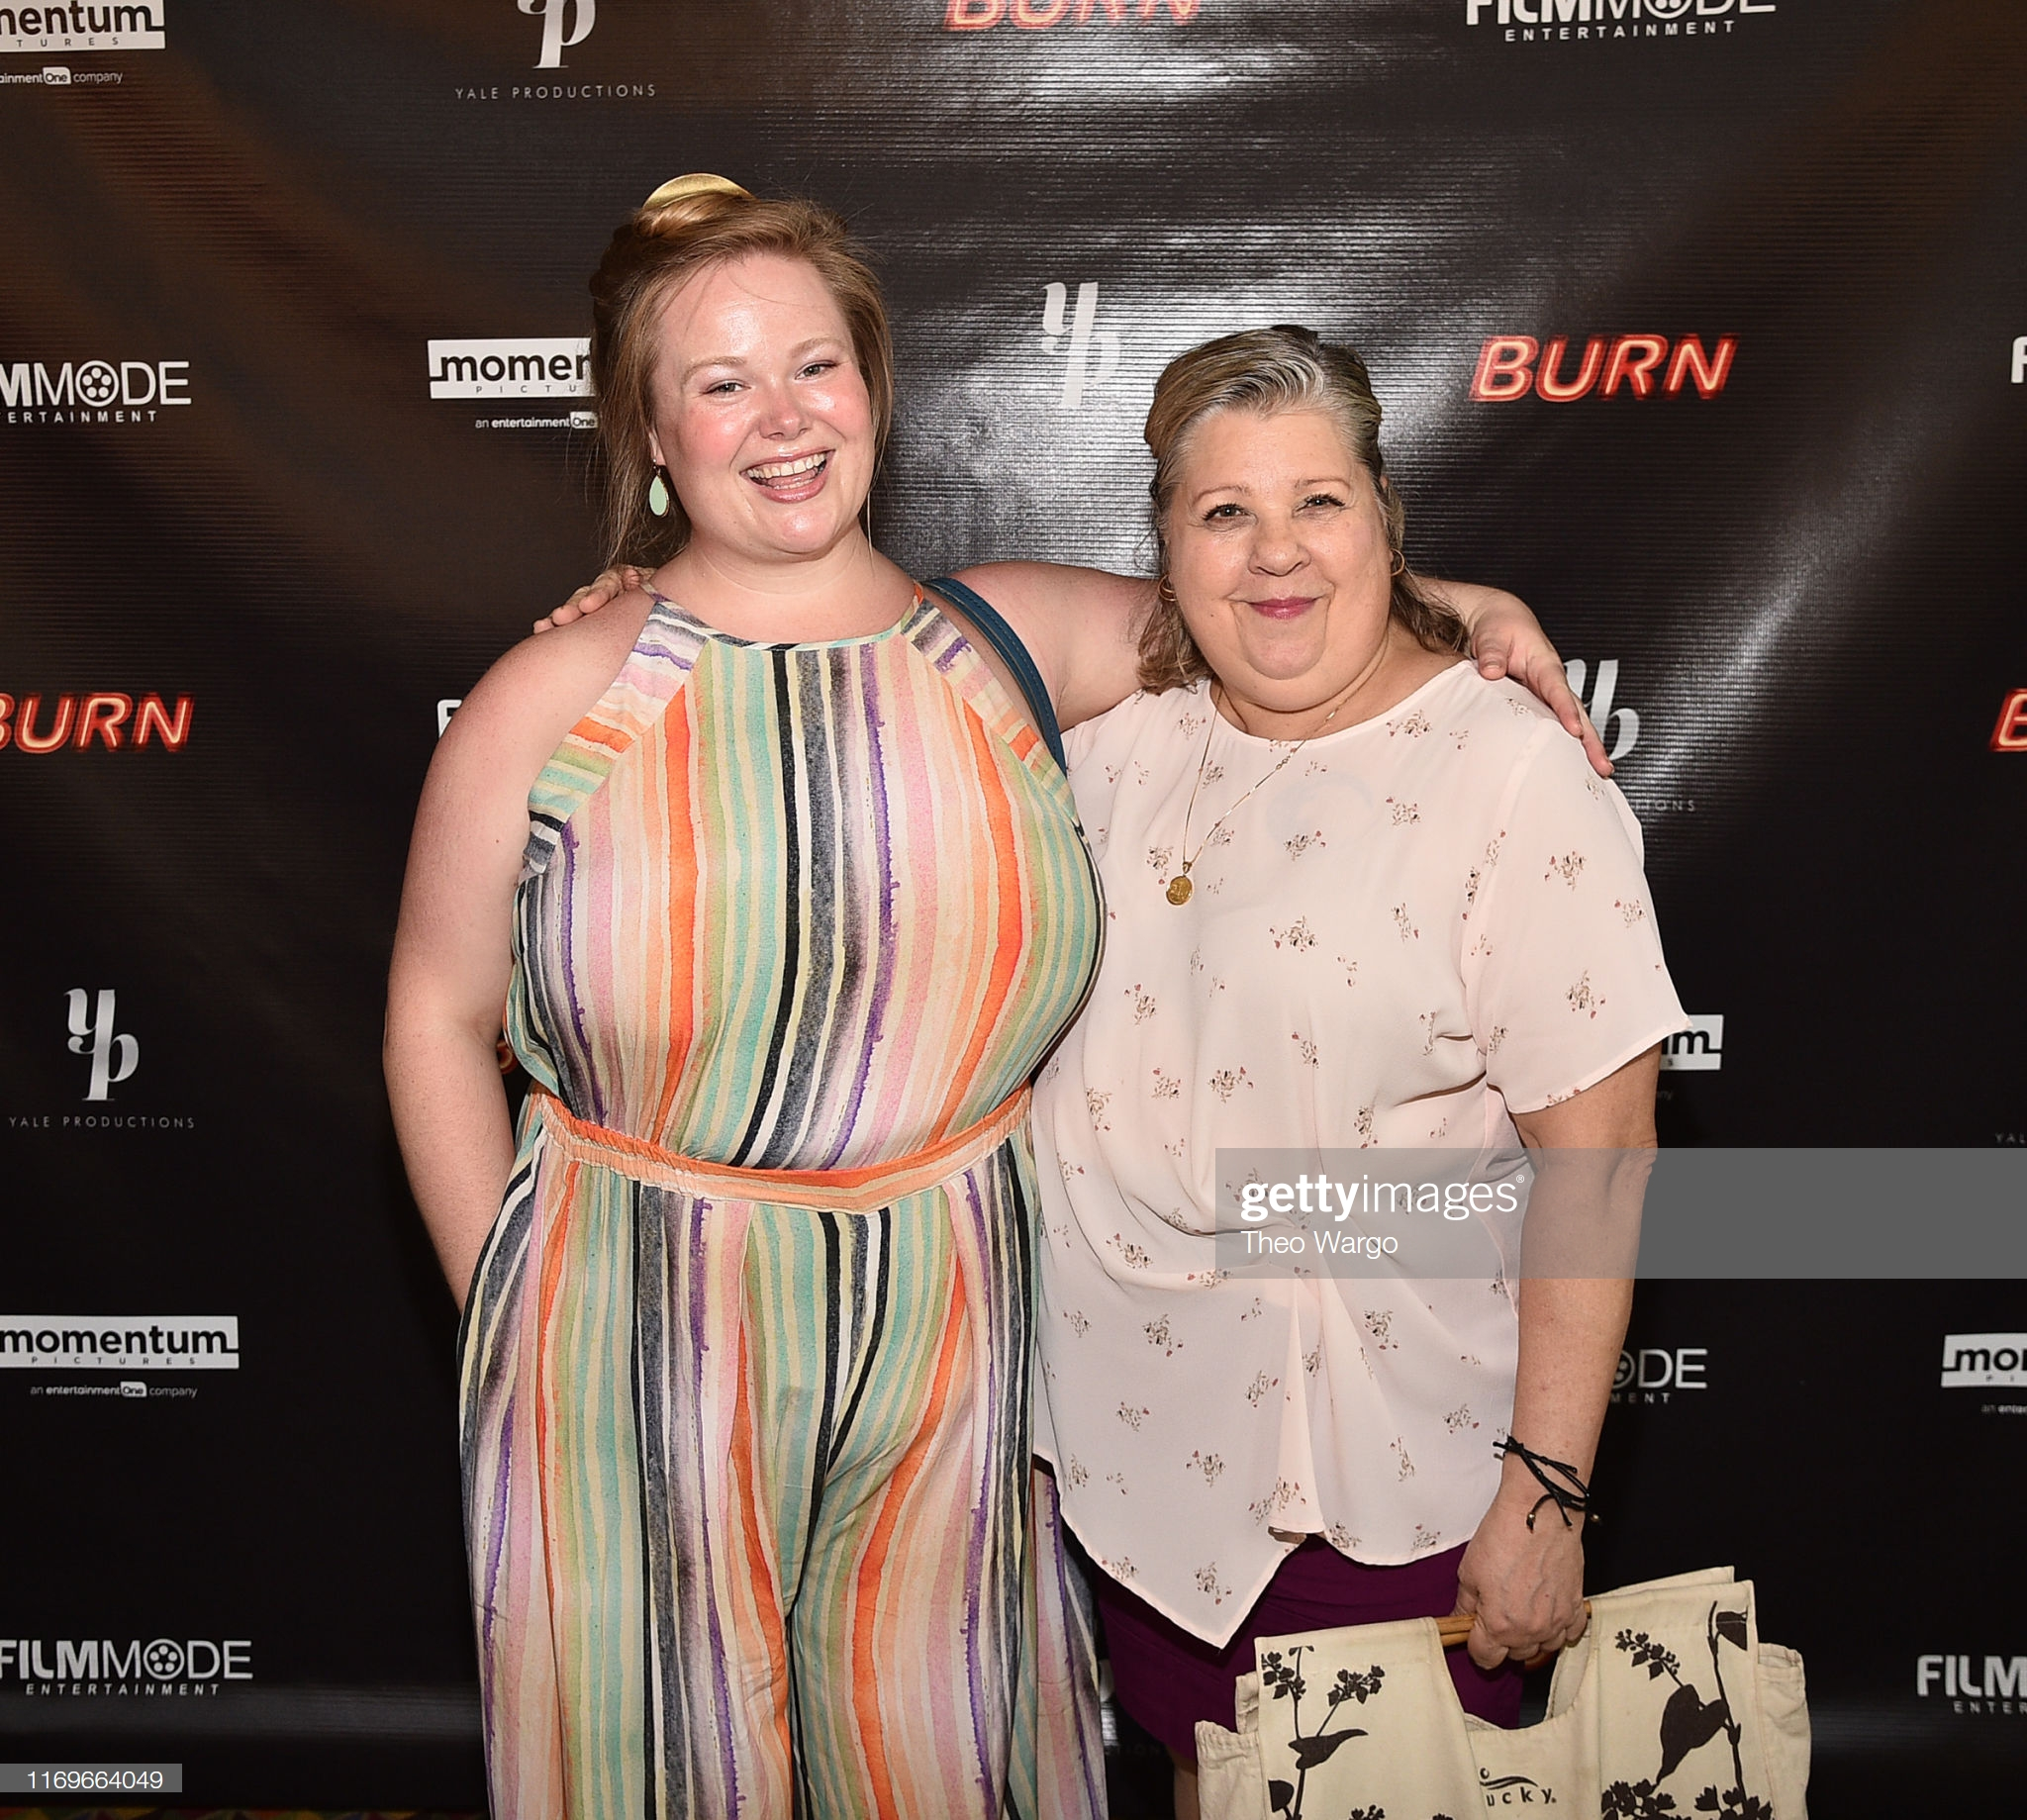 Jen Ponton attends the Burn premiere in New York City